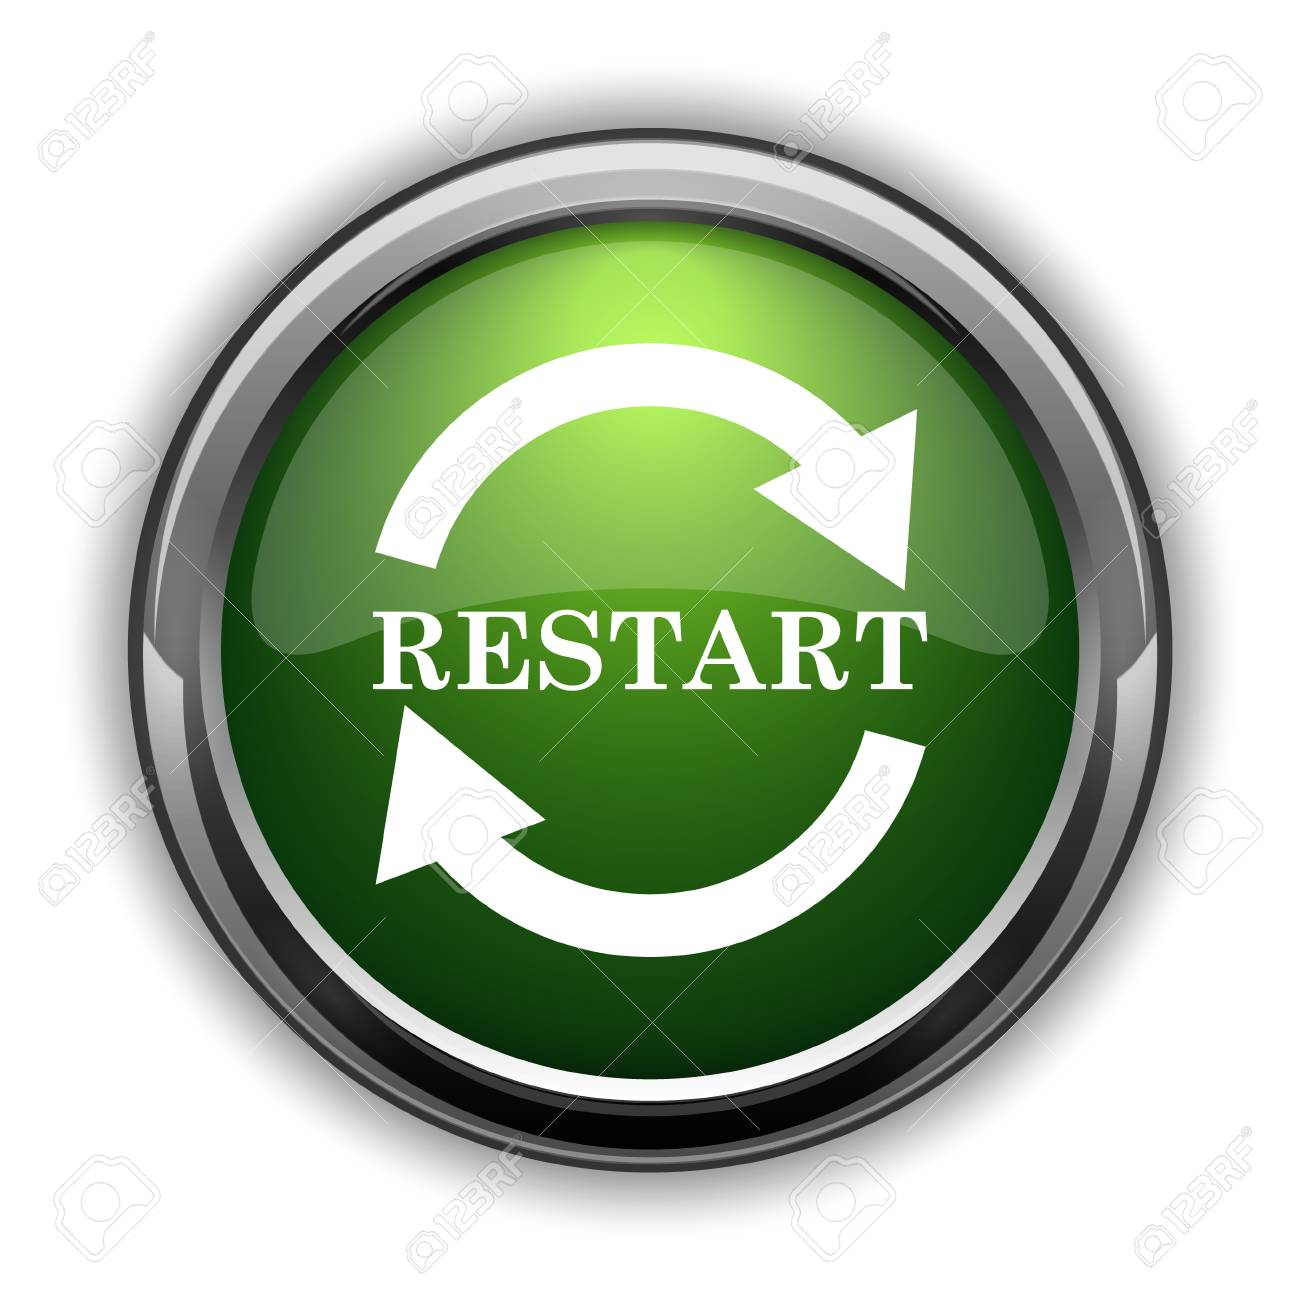 restart icon restart website button on white background stock photo picture and royalty free image image 82350102 restart icon restart website button on white background